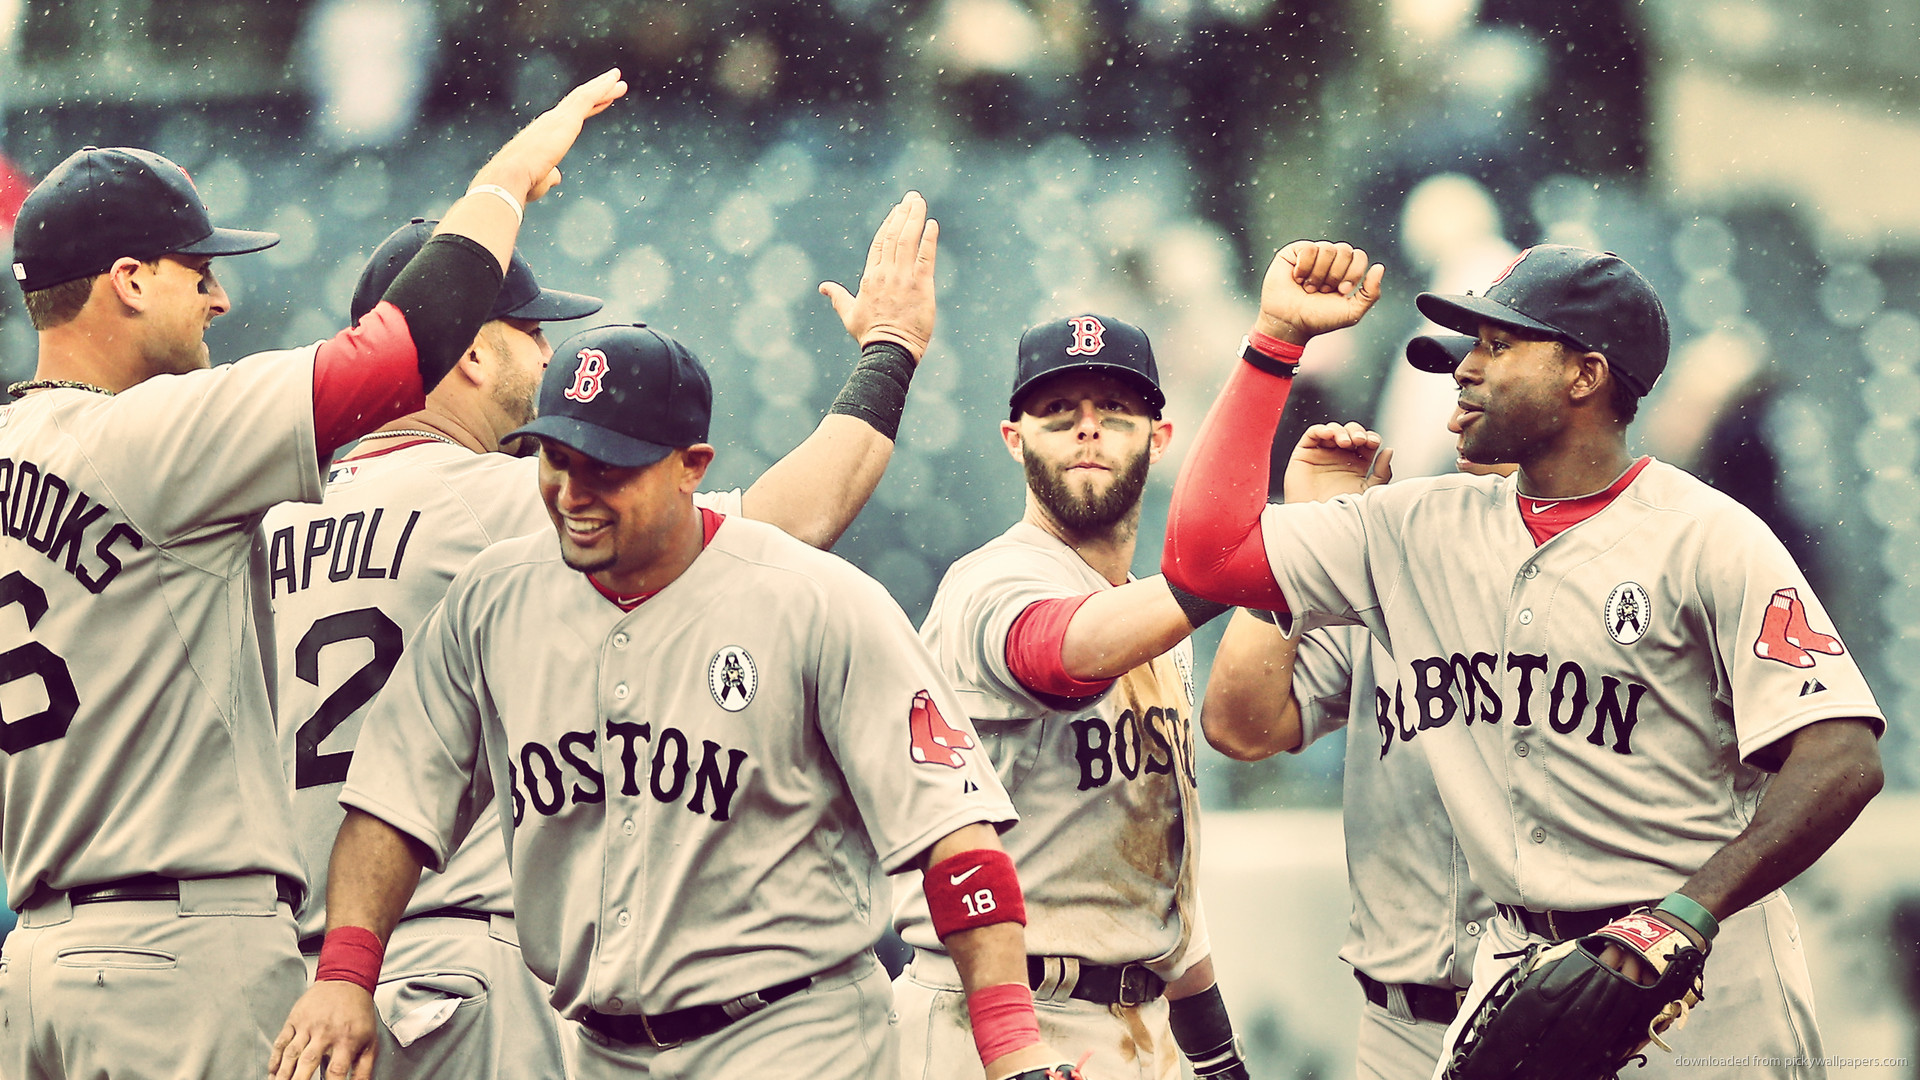 1920x1080 Boston Red Sox Cheering in Rain picture.